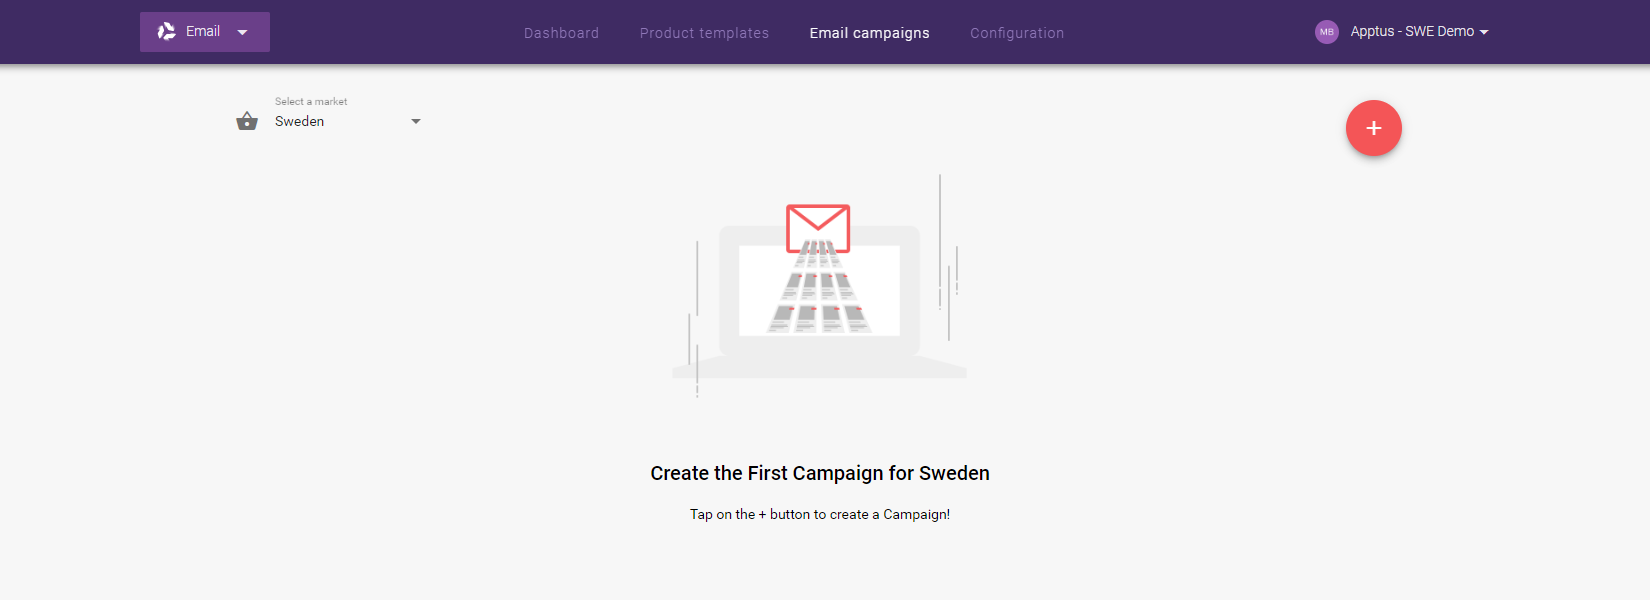 Email Recommendations - Email campaigns - Home